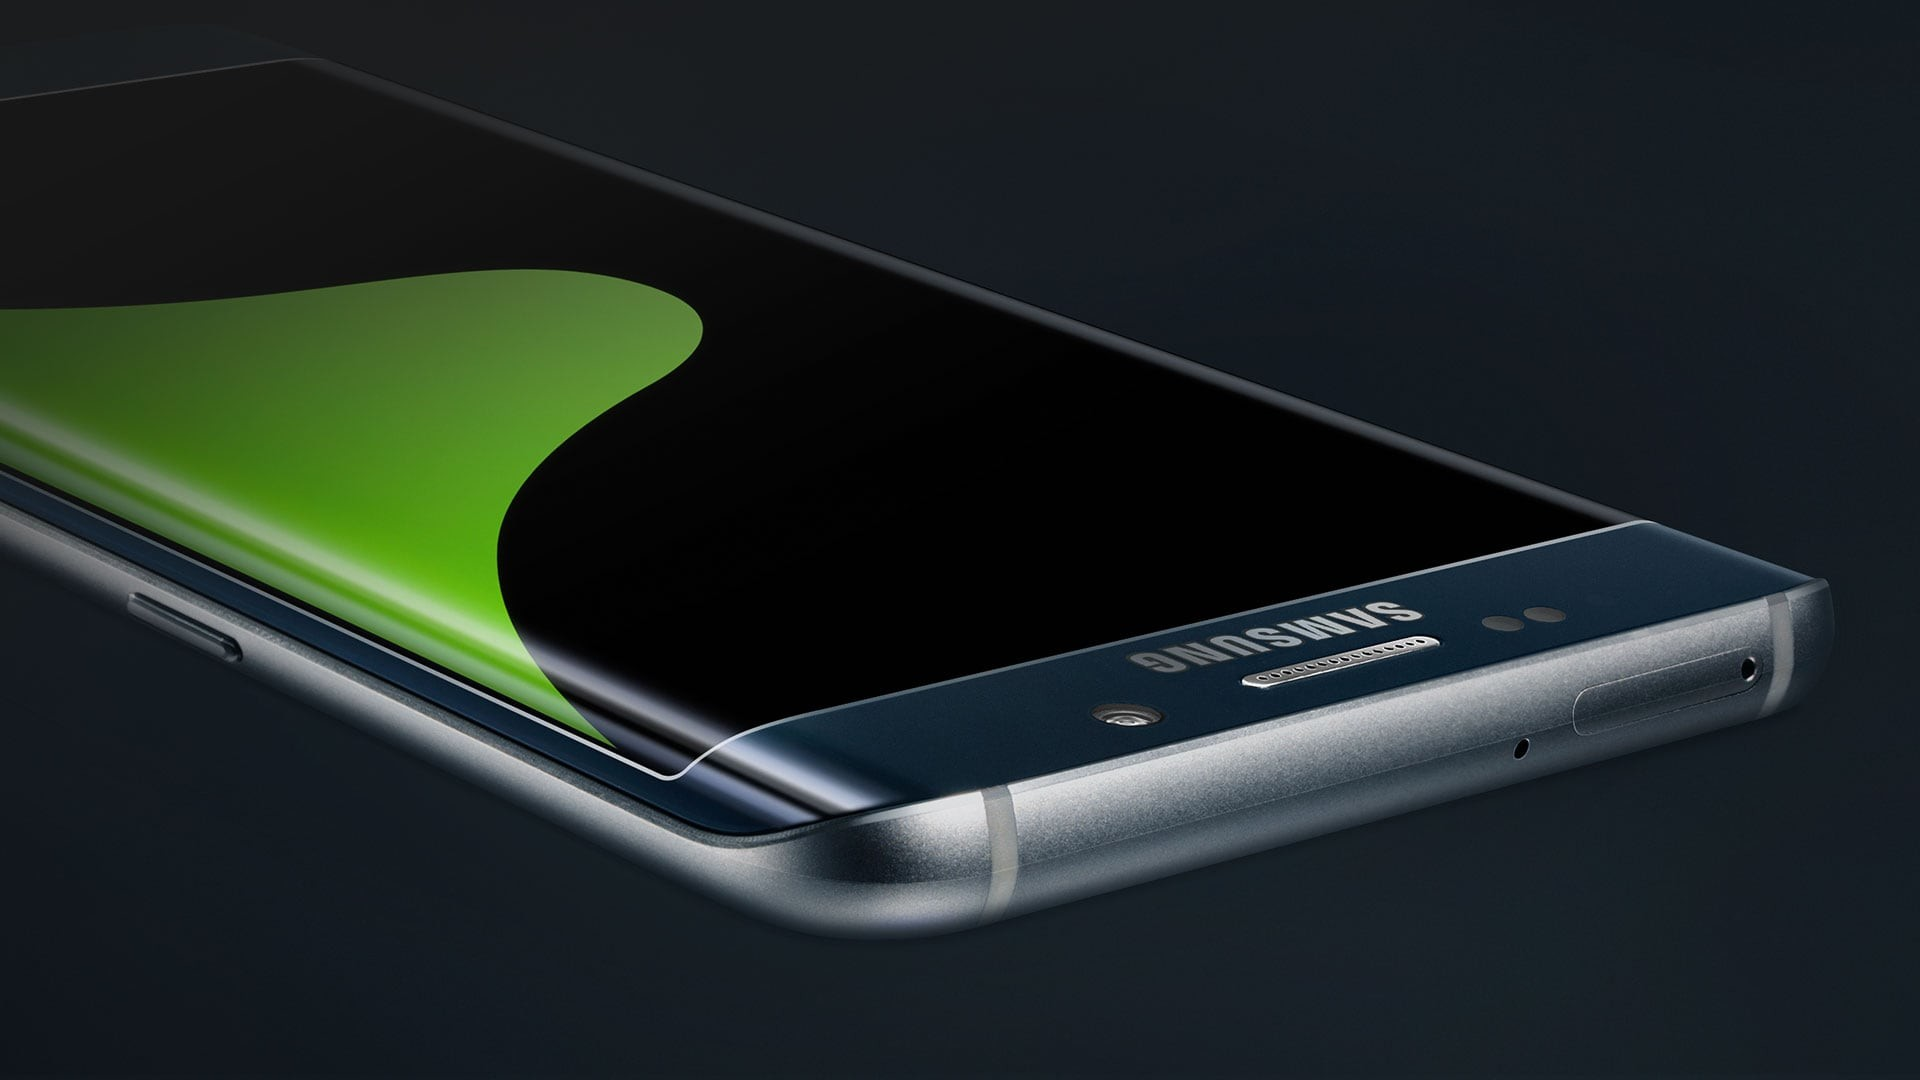 Black Sapphire Galaxy S6 Edge Plus Lying Face Up Smartphone 1920x1080 Download Hd Wallpaper Wallpapertip